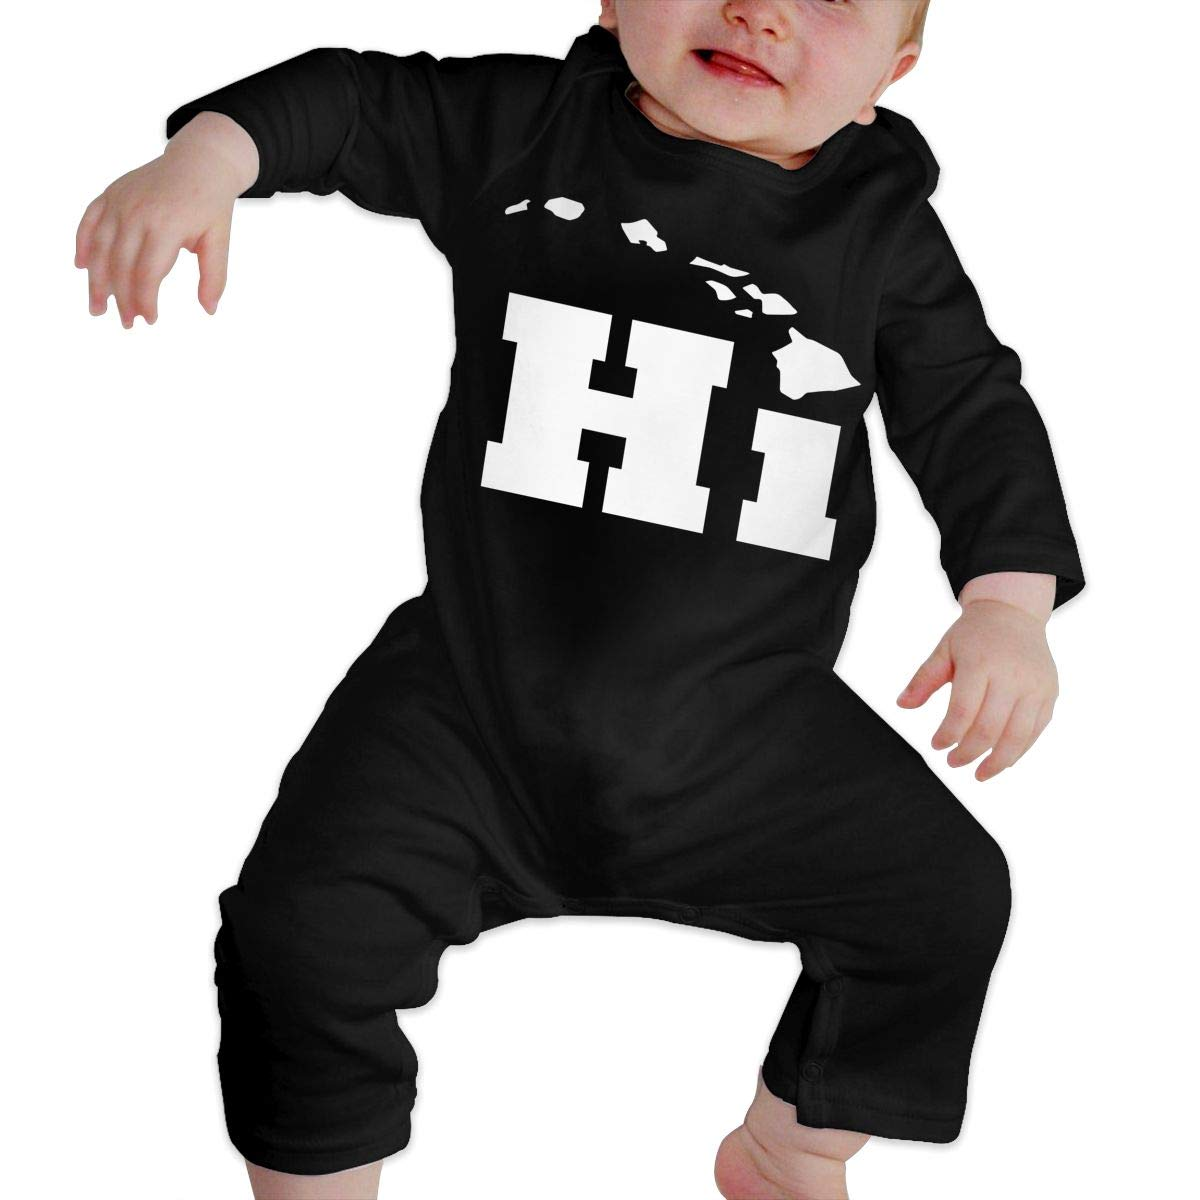 U99oi-9 Long Sleeve Cotton Rompers for Baby Girls Boys Soft Hi with Hawaii Island Playsuit